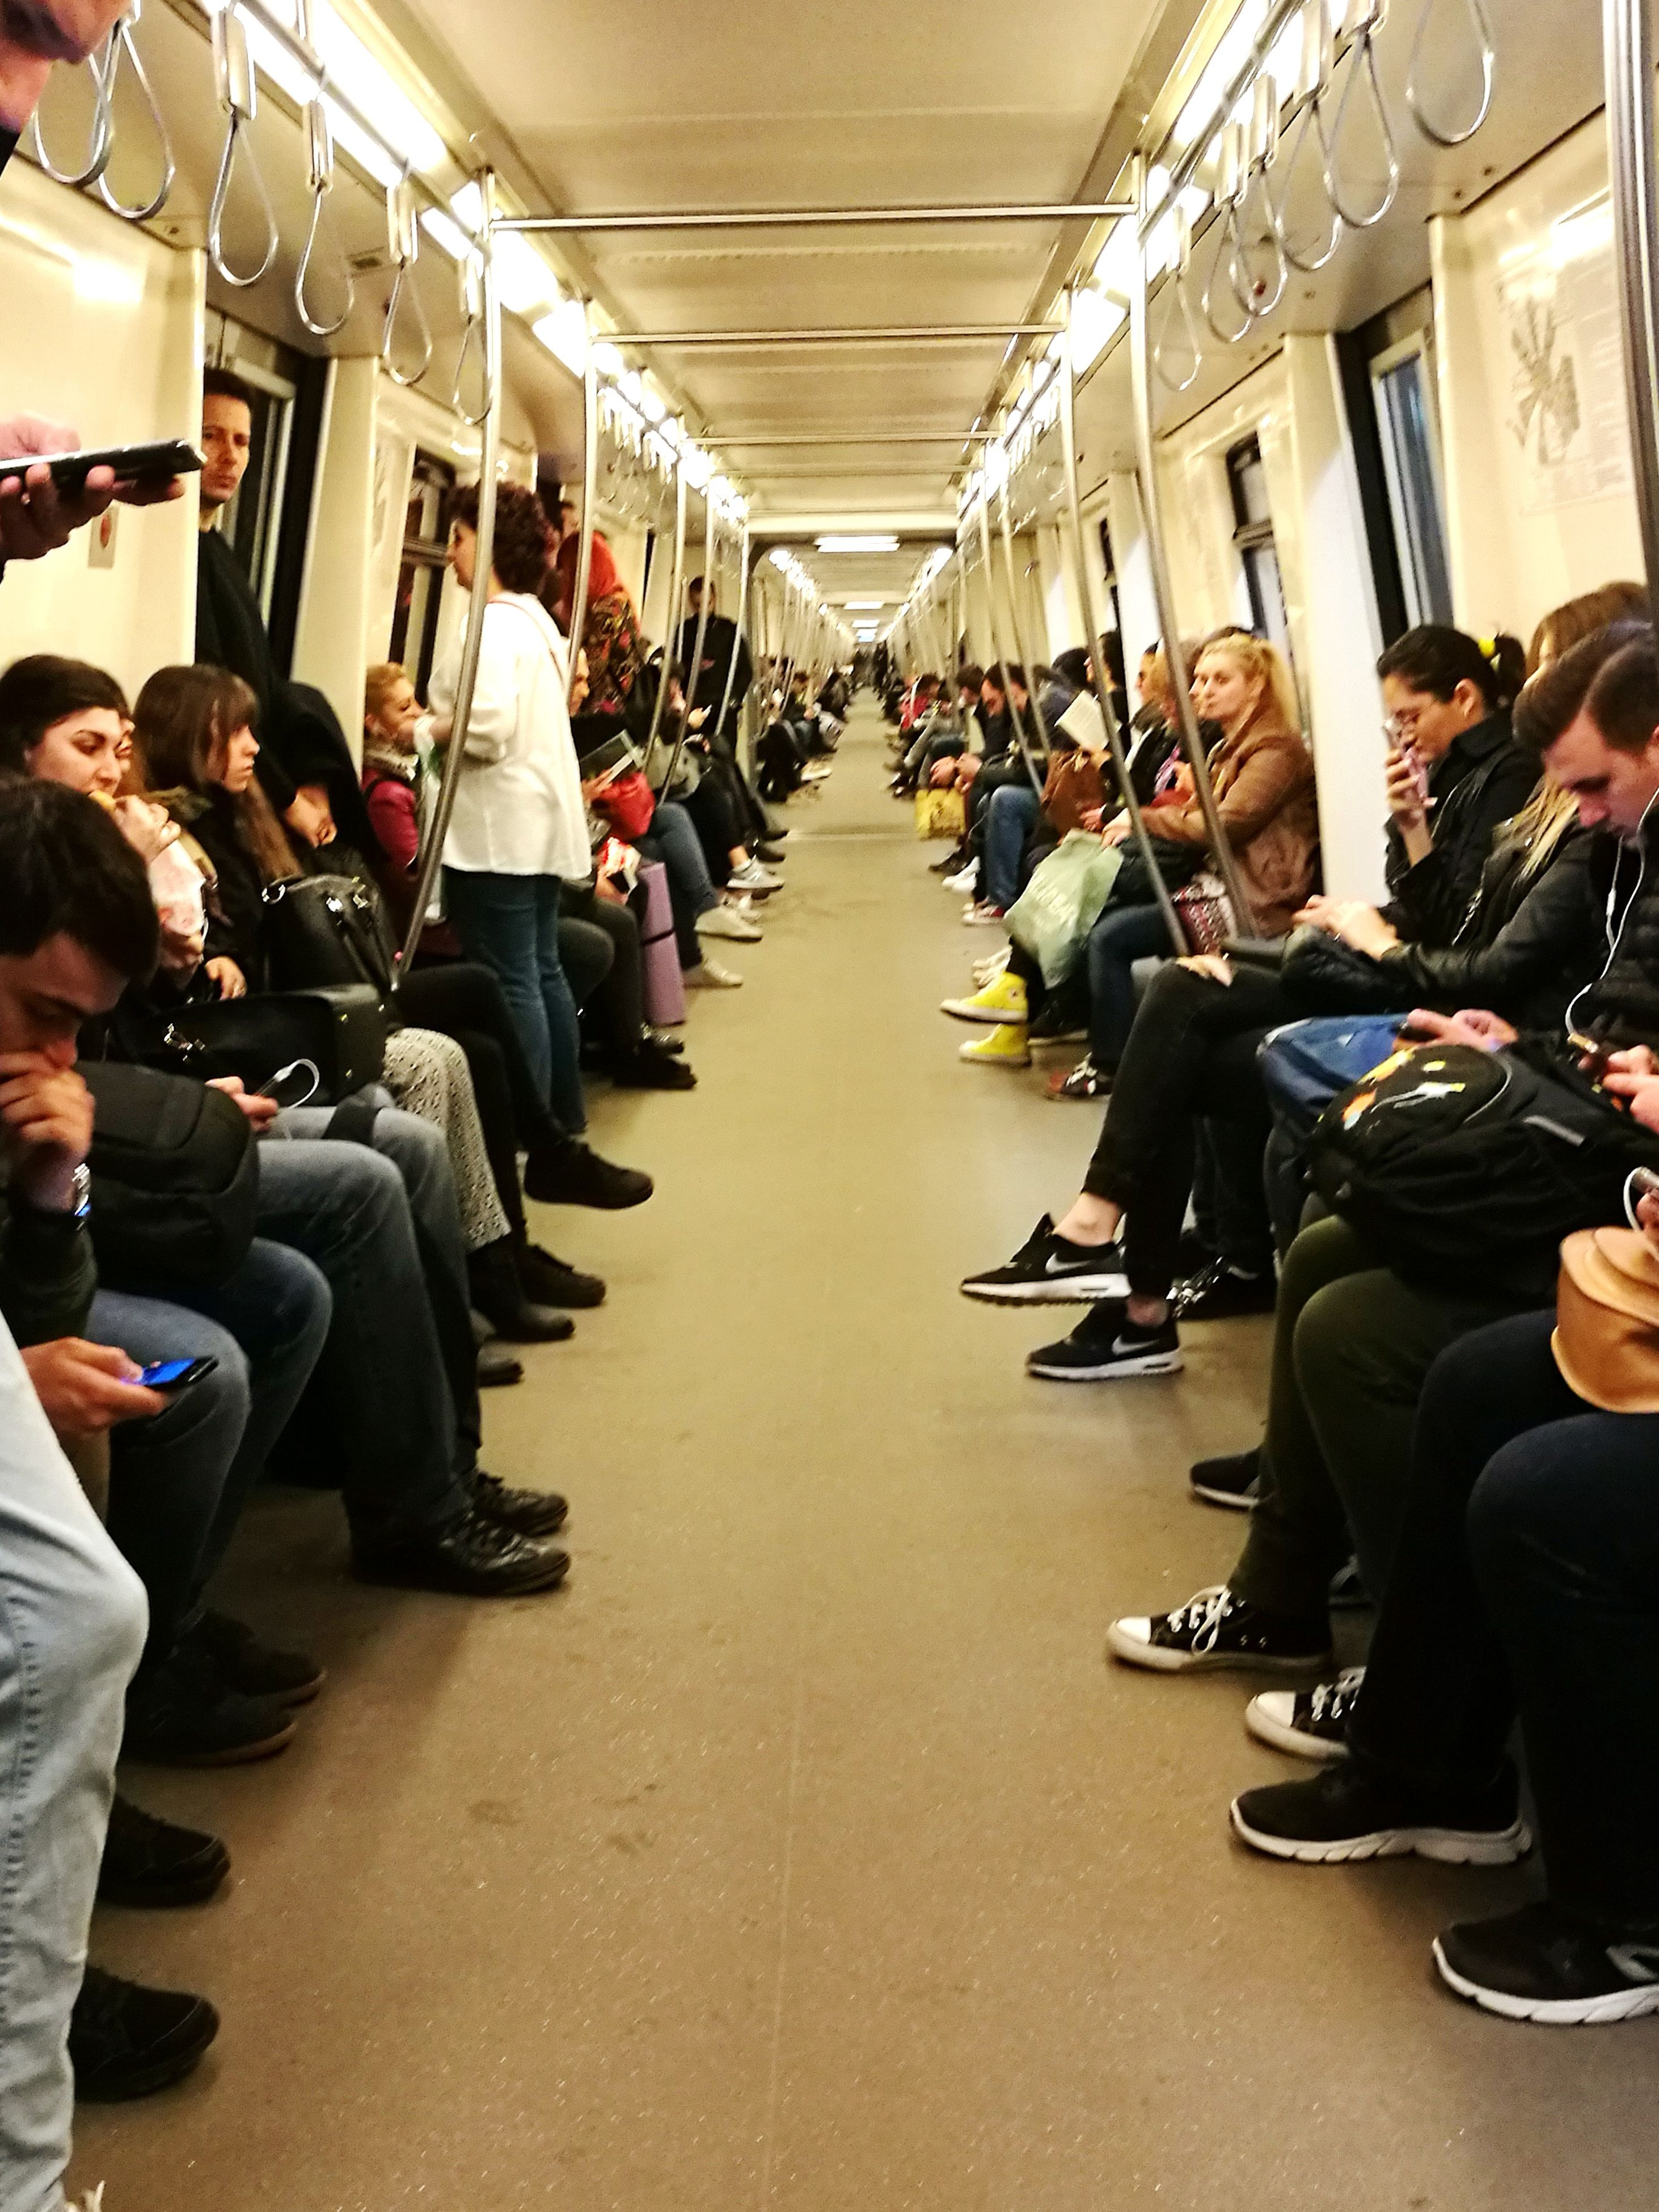 large group of people, travel, in a row, people, indoors, women, men, adults only, adult, crowd, day